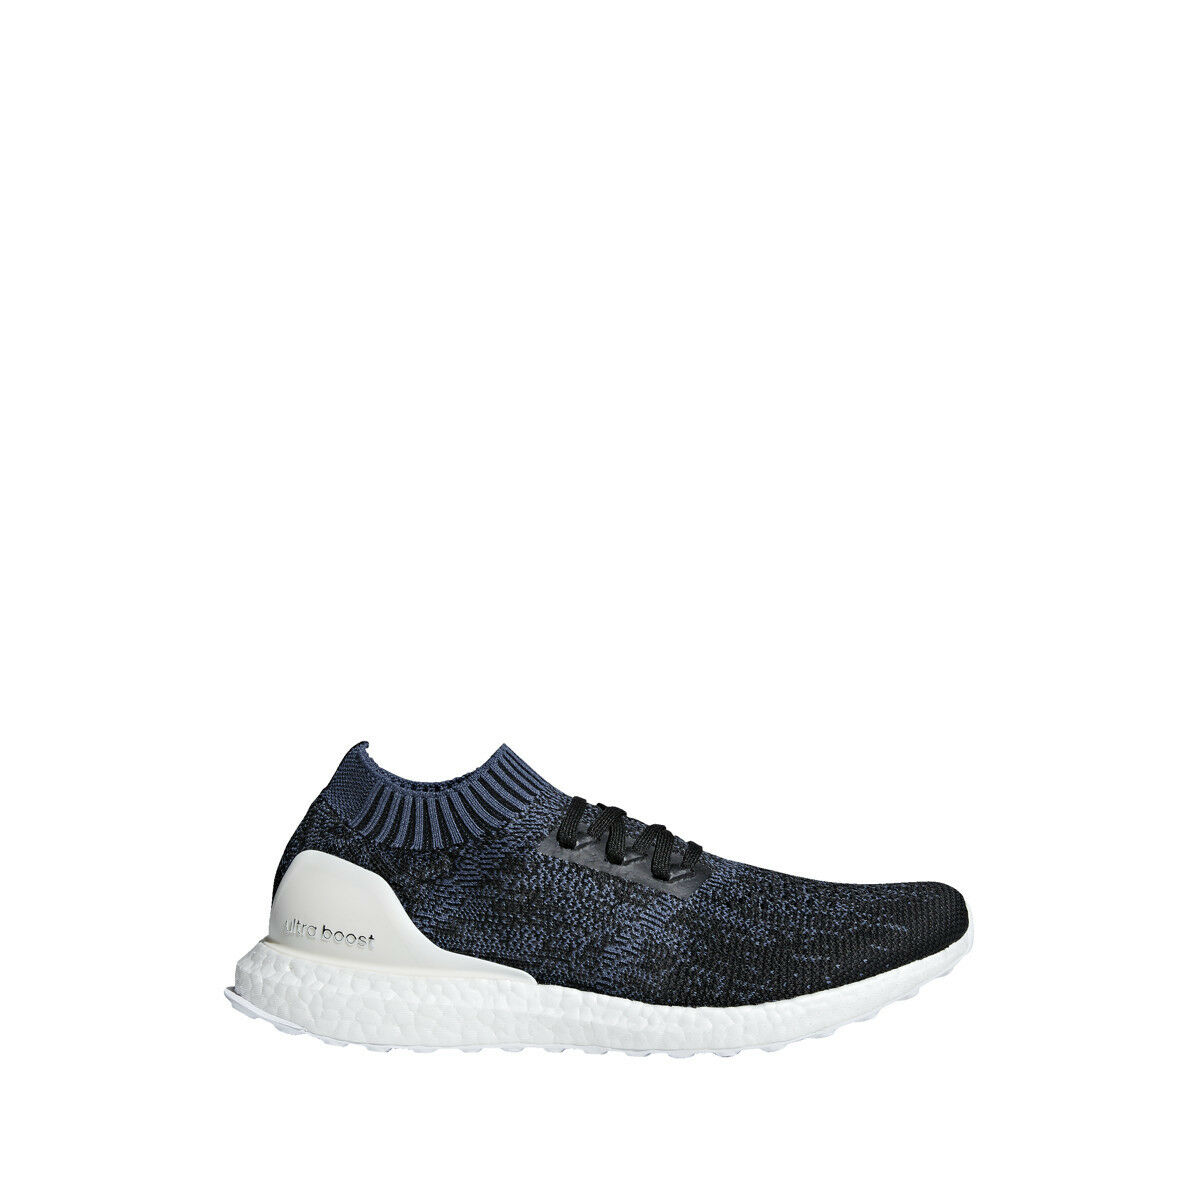 Nuevo Adidas Ultra Boost Uncaged 4.0 Uncaged Boost Tech Tinta Ultraboost CM8278 a3a69f